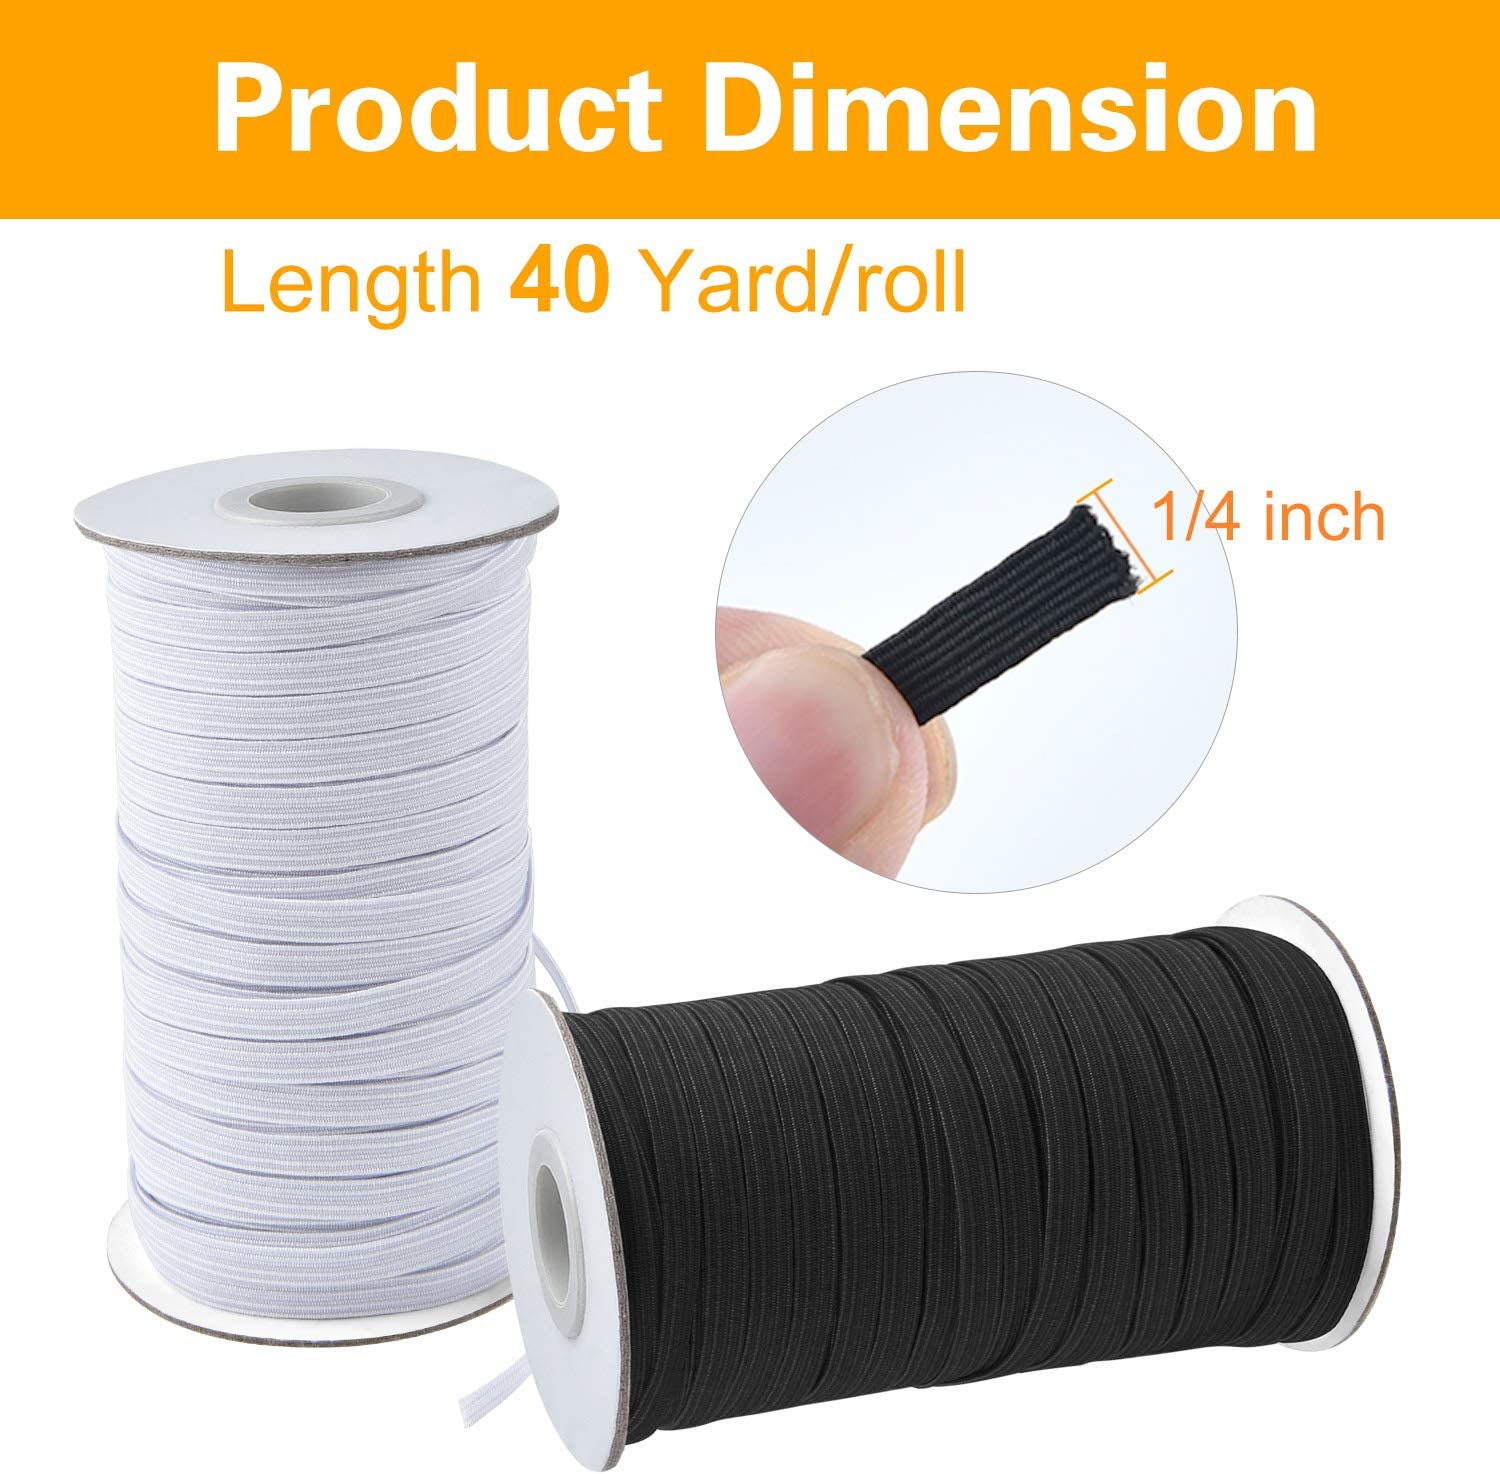 40 Yards//Roll Black, 1//4 Inch 2 Rolls Coopay 80 Yards Length 1//4 Width Elastic Cord Elastic Bands Elastic Rope Heavy Stretch Elastic Spool Knit for Sewing